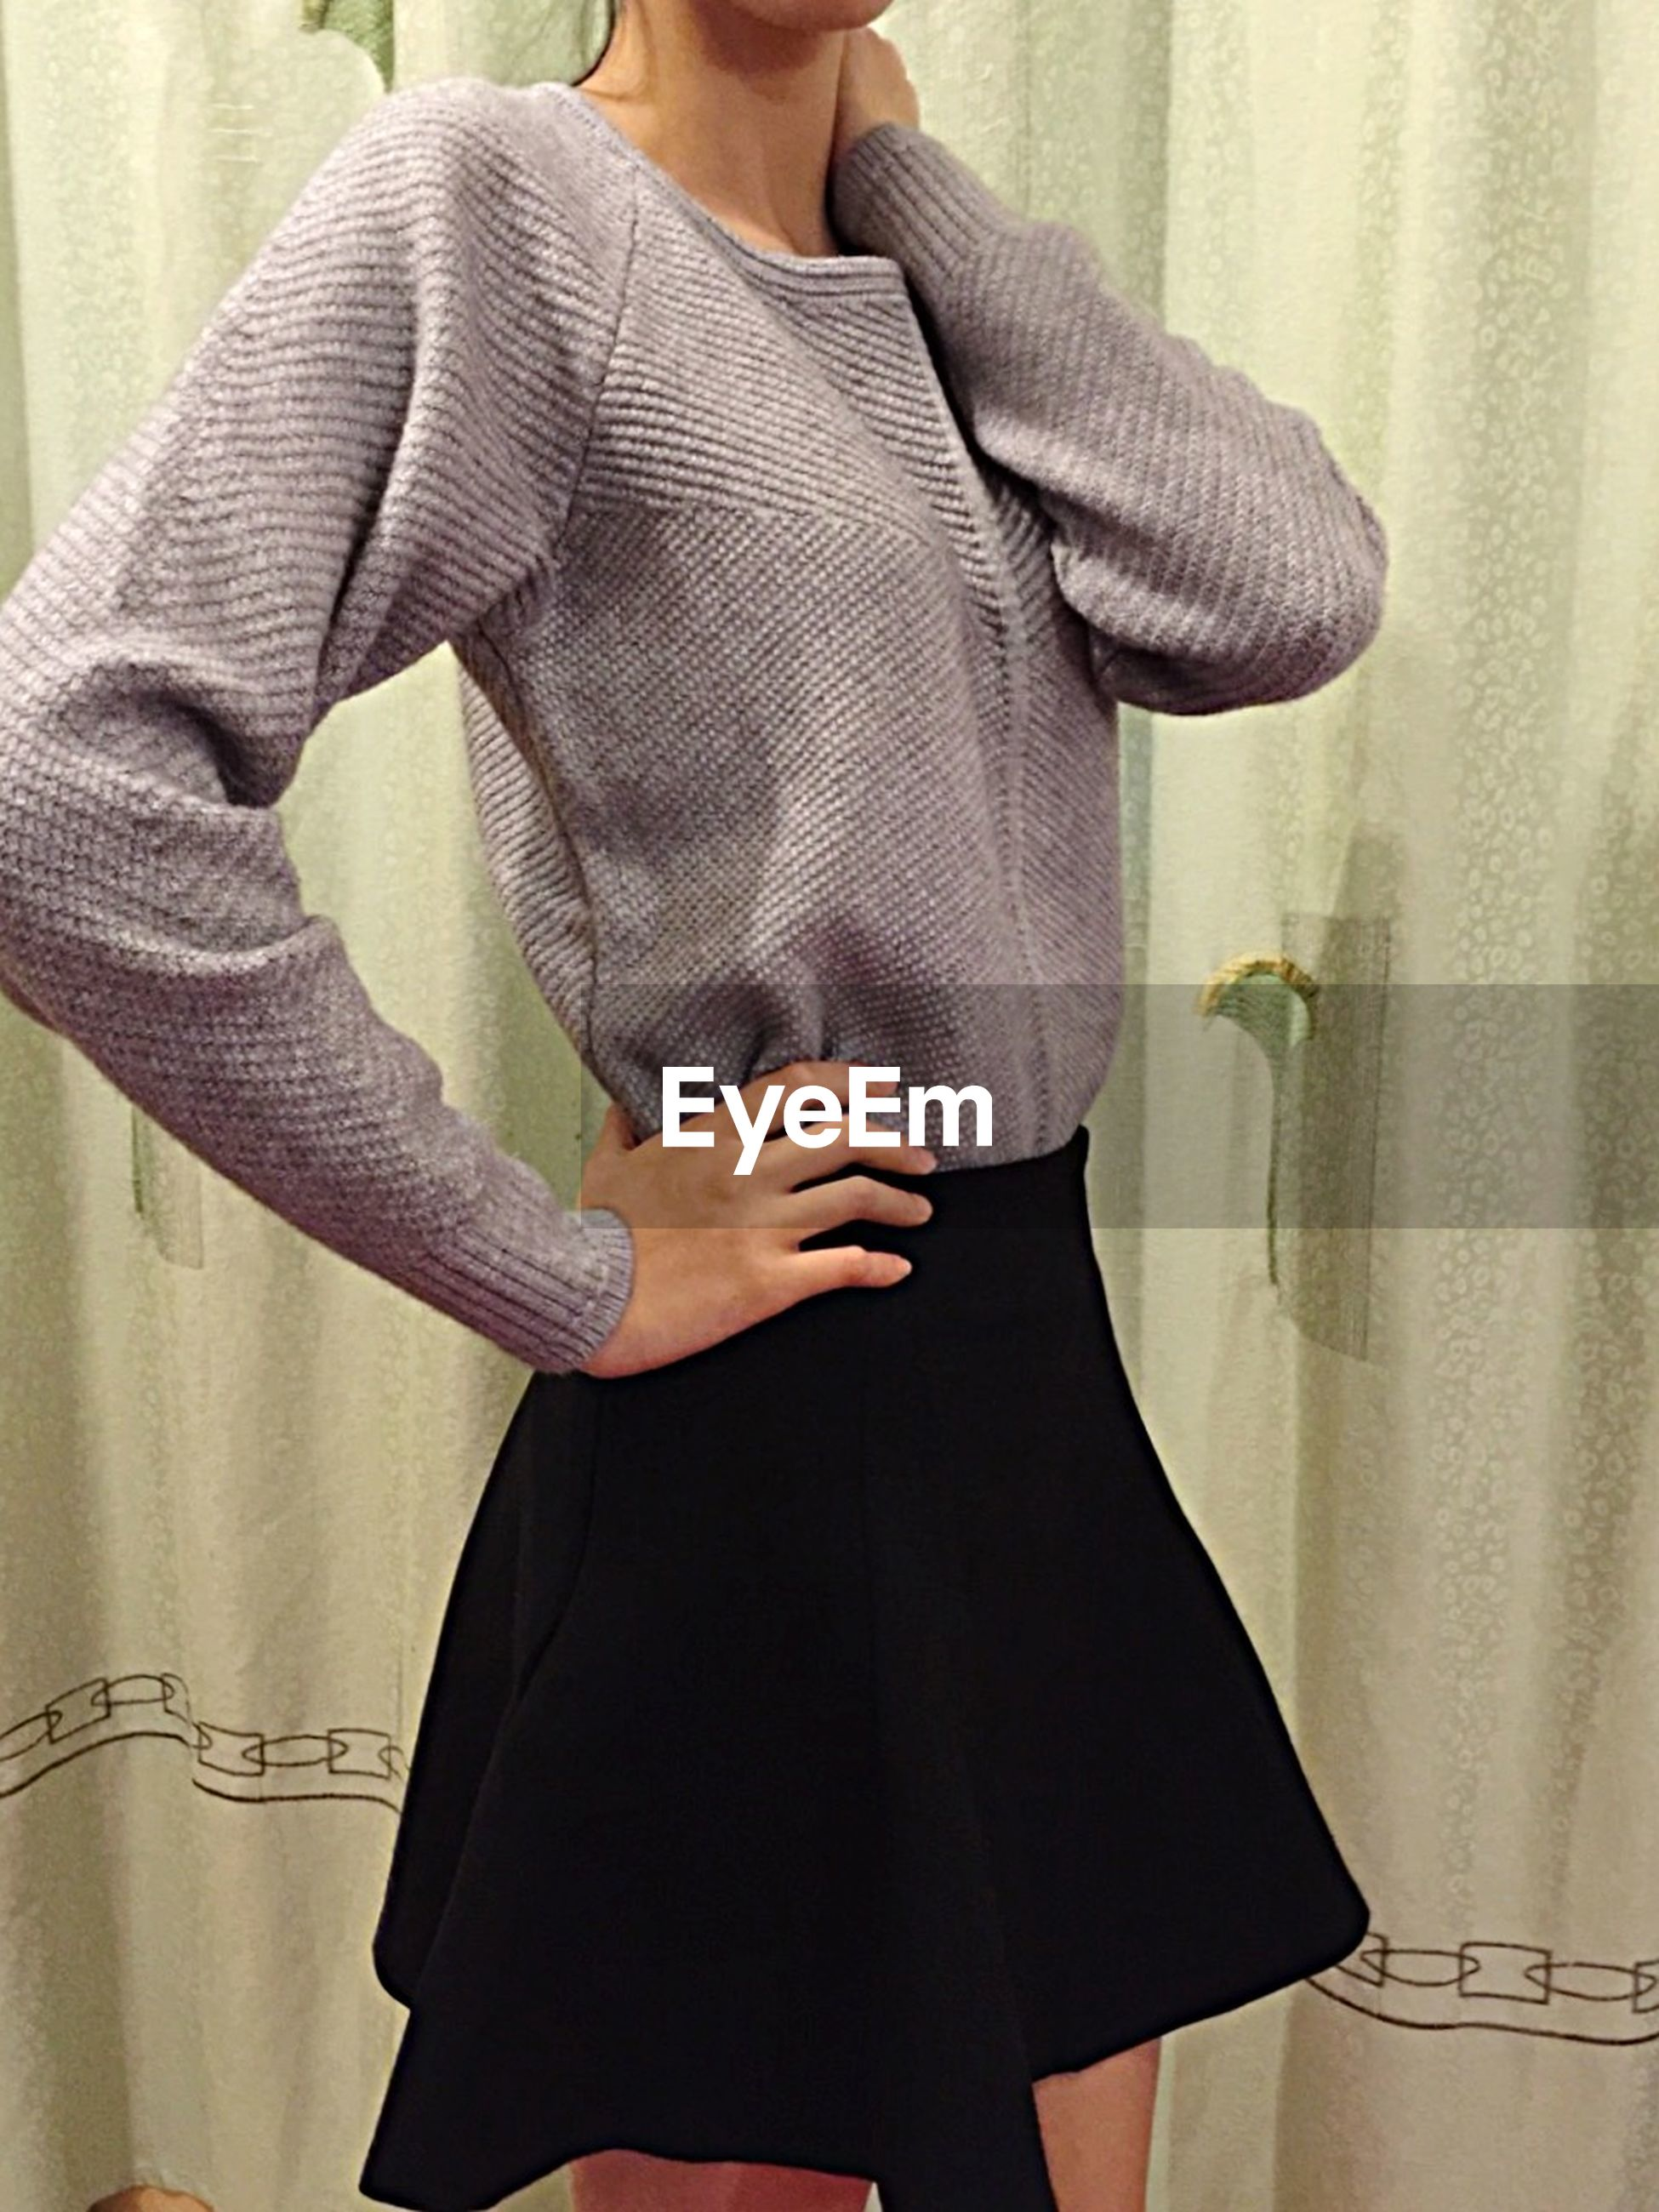 indoors, midsection, lifestyles, person, casual clothing, fashion, mid section, holding, front view, leisure activity, standing, young adult, young women, home interior, femininity, men